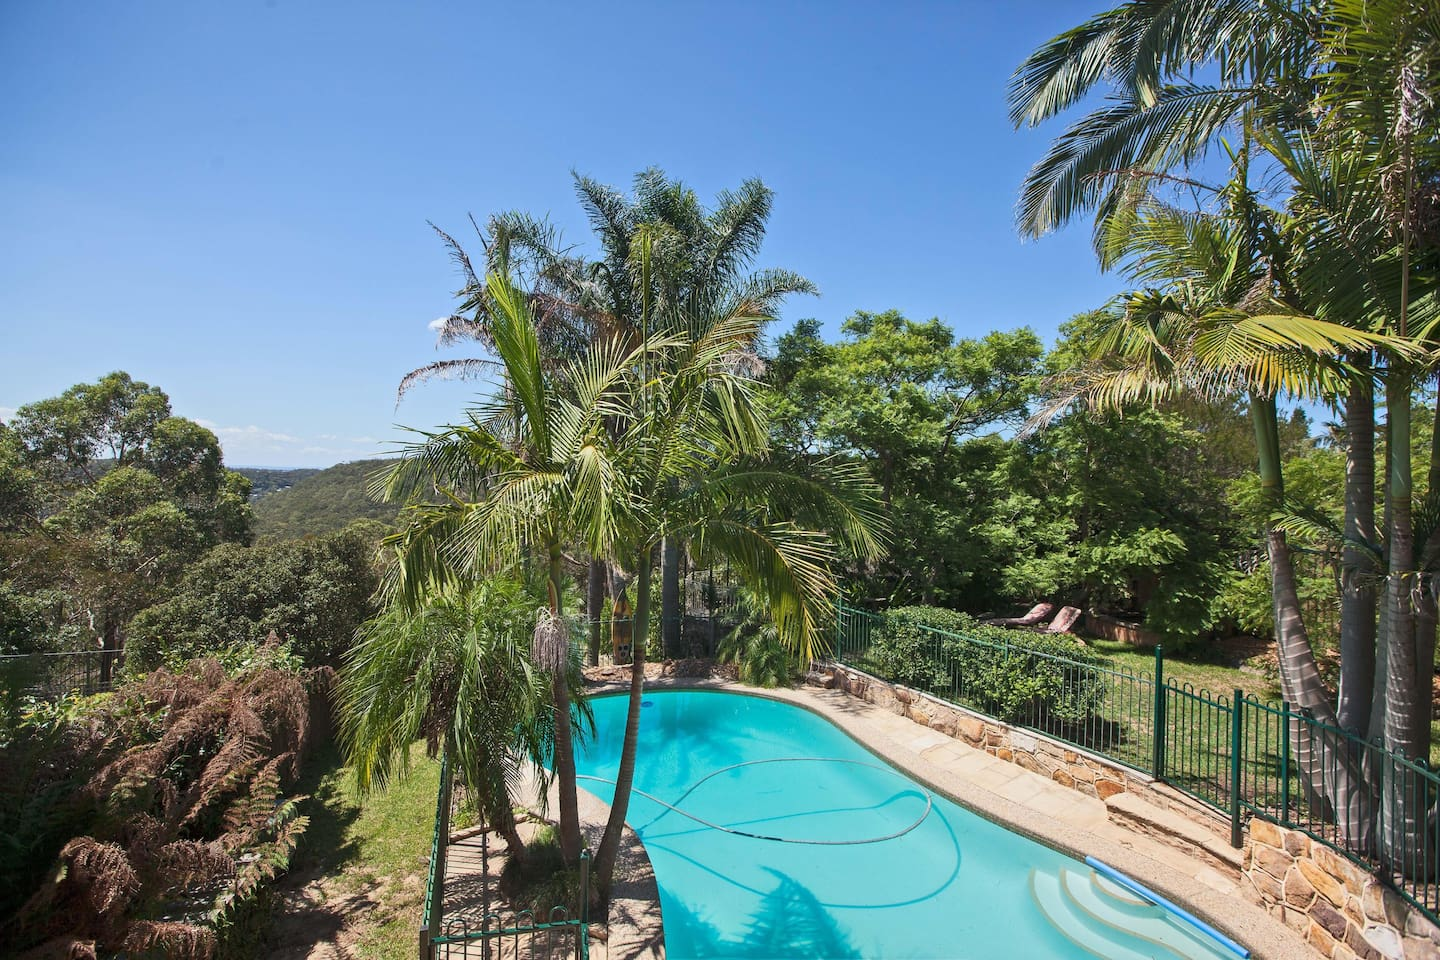 View of The Woronora valley, solar heater pool and entire garden area you are welcome to enjoy.